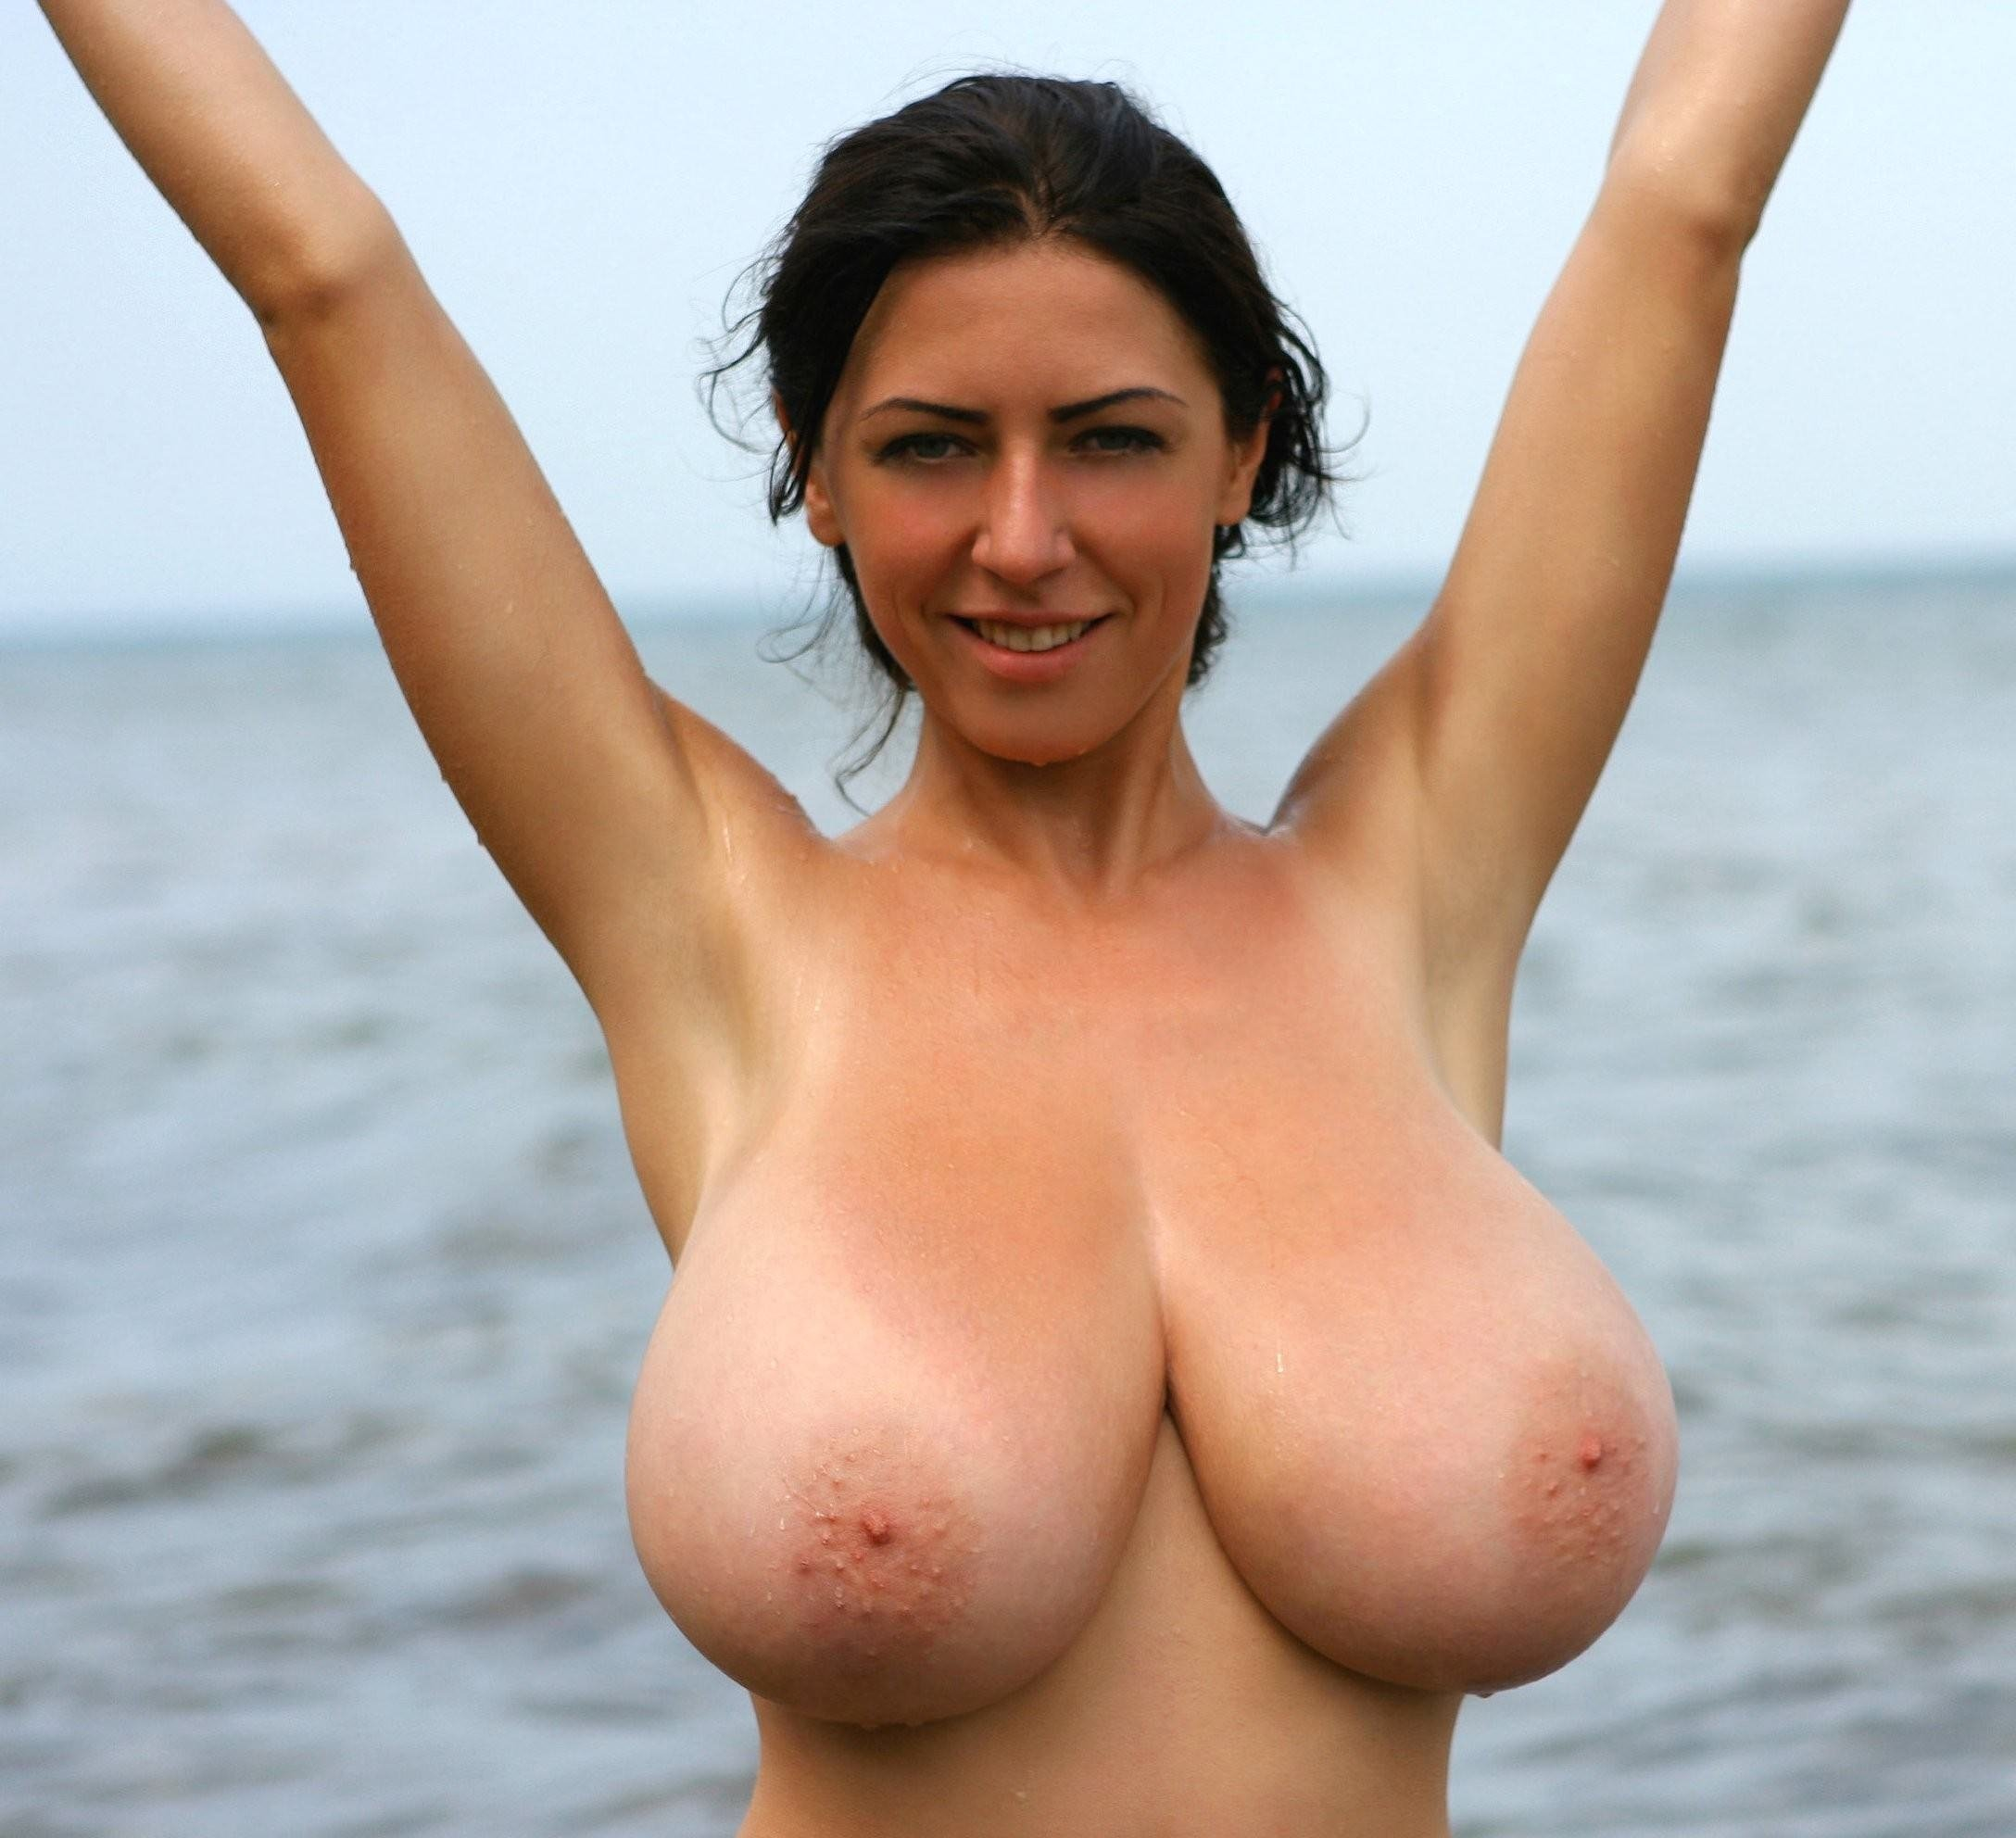 Young girls with big breasts